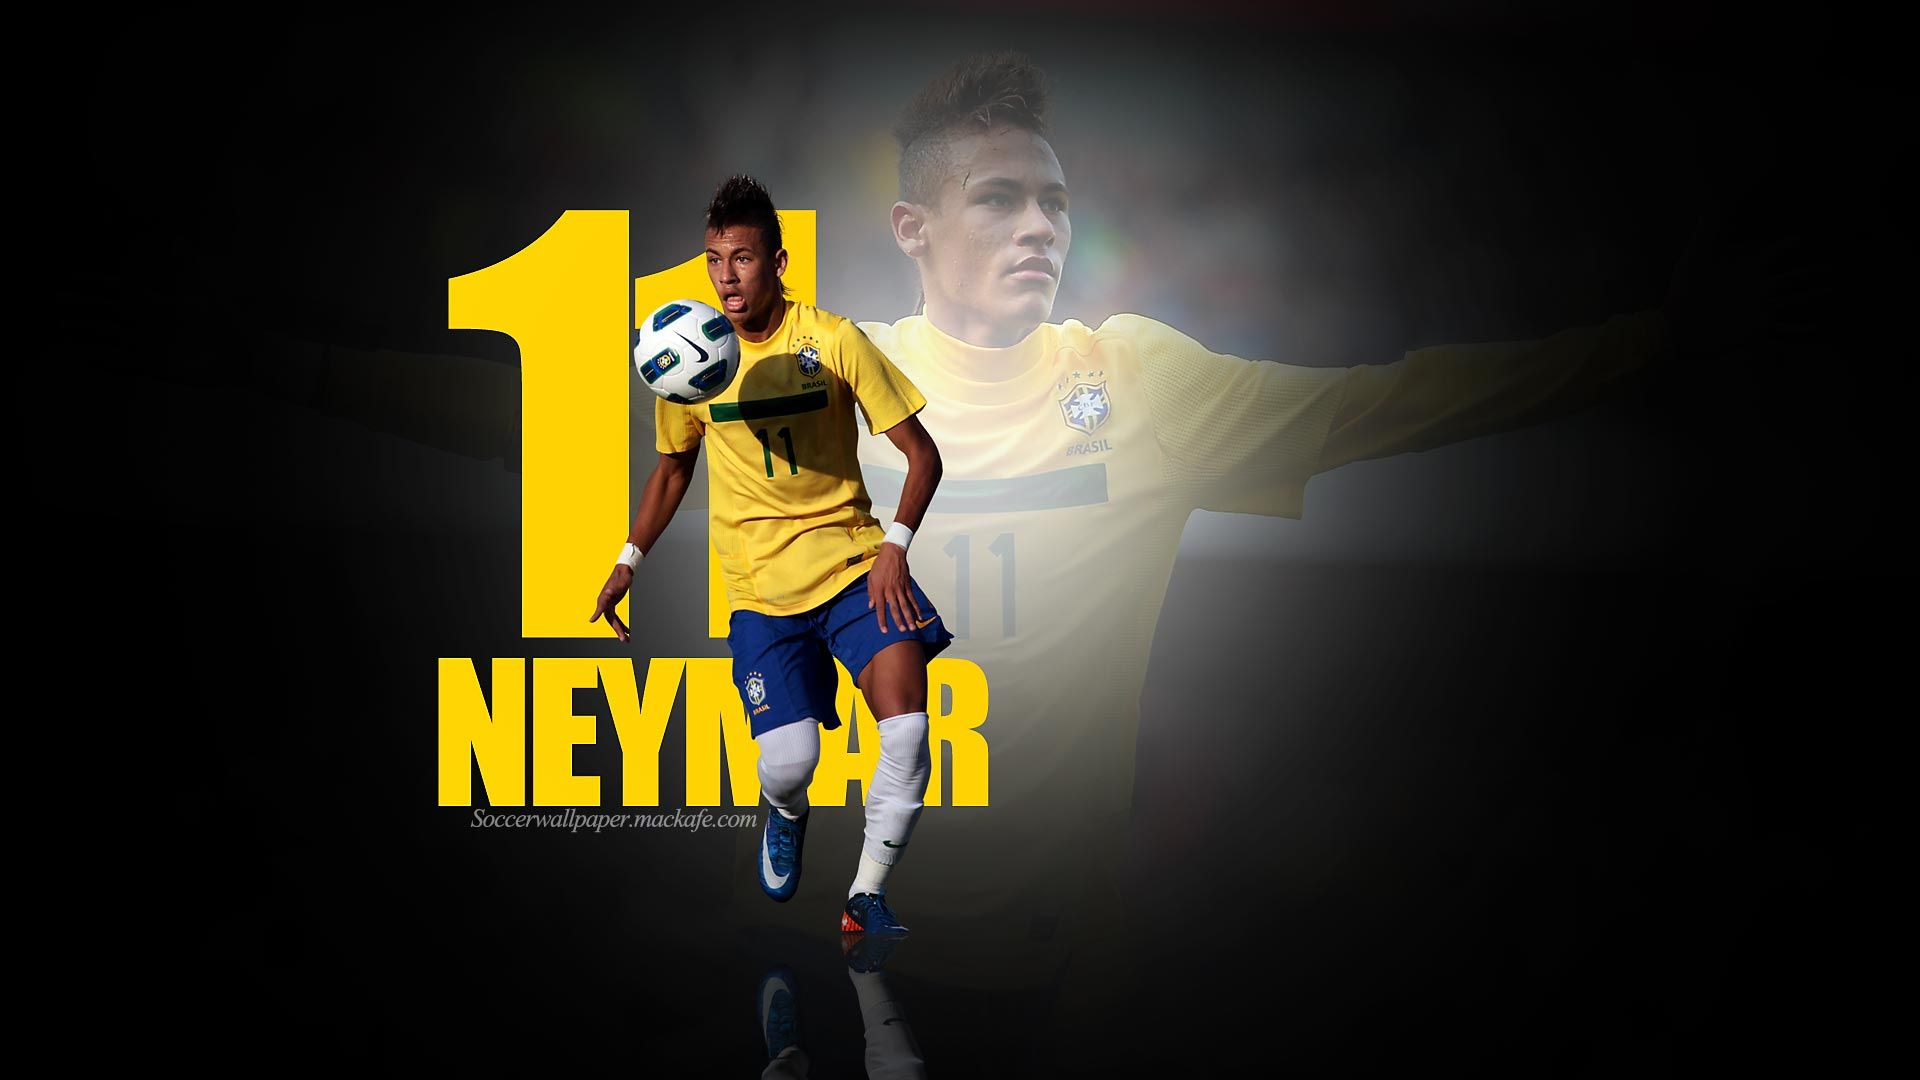 Hd wallpaper neymar - Neymar Hd Images Http Wallatar Com Wp Content